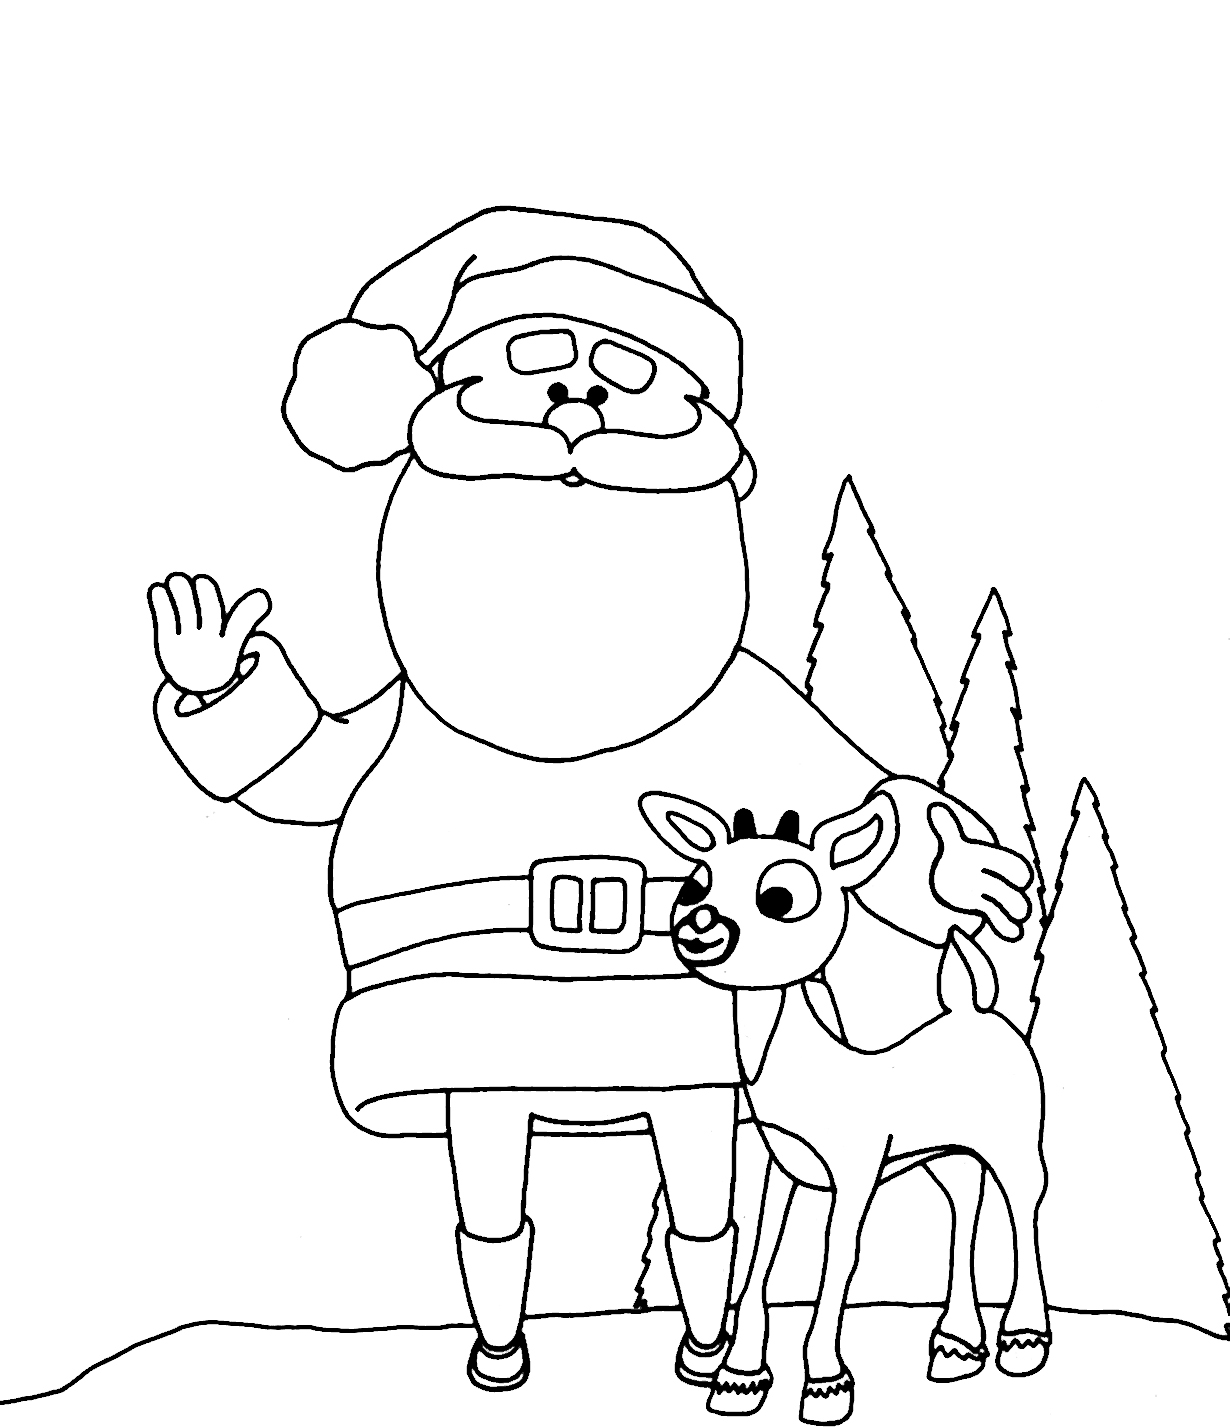 santa and reindeer coloring page for kids - Santa Claus Coloring Printables